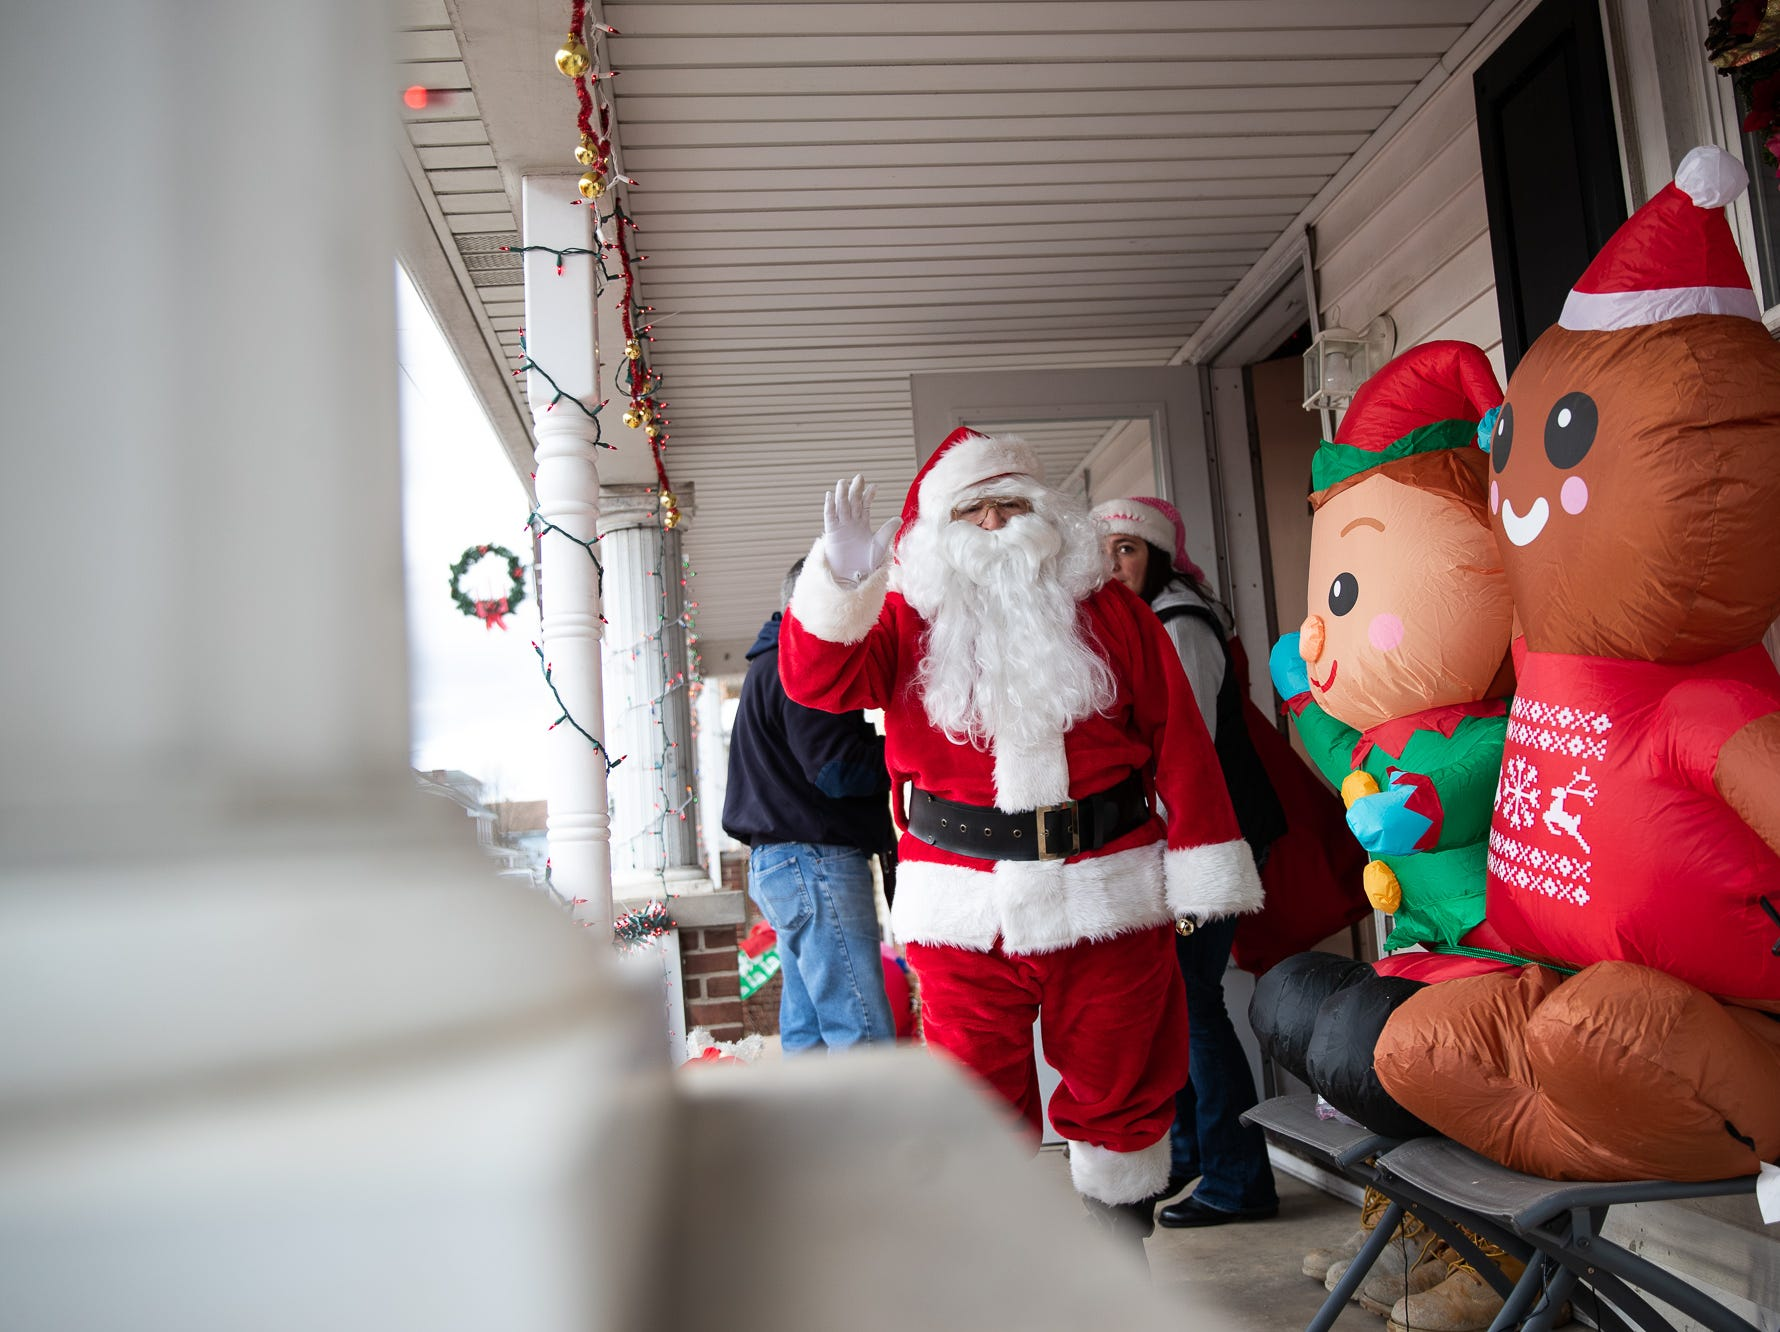 Santa leaves a house during the S.A.V.E.S Project Santa, Saturday, Dec. 22, 2018, in McSherrystown Borough. The S.A.V.E.S Project Santa donated food, toys, and clothing to 12 local families in need.